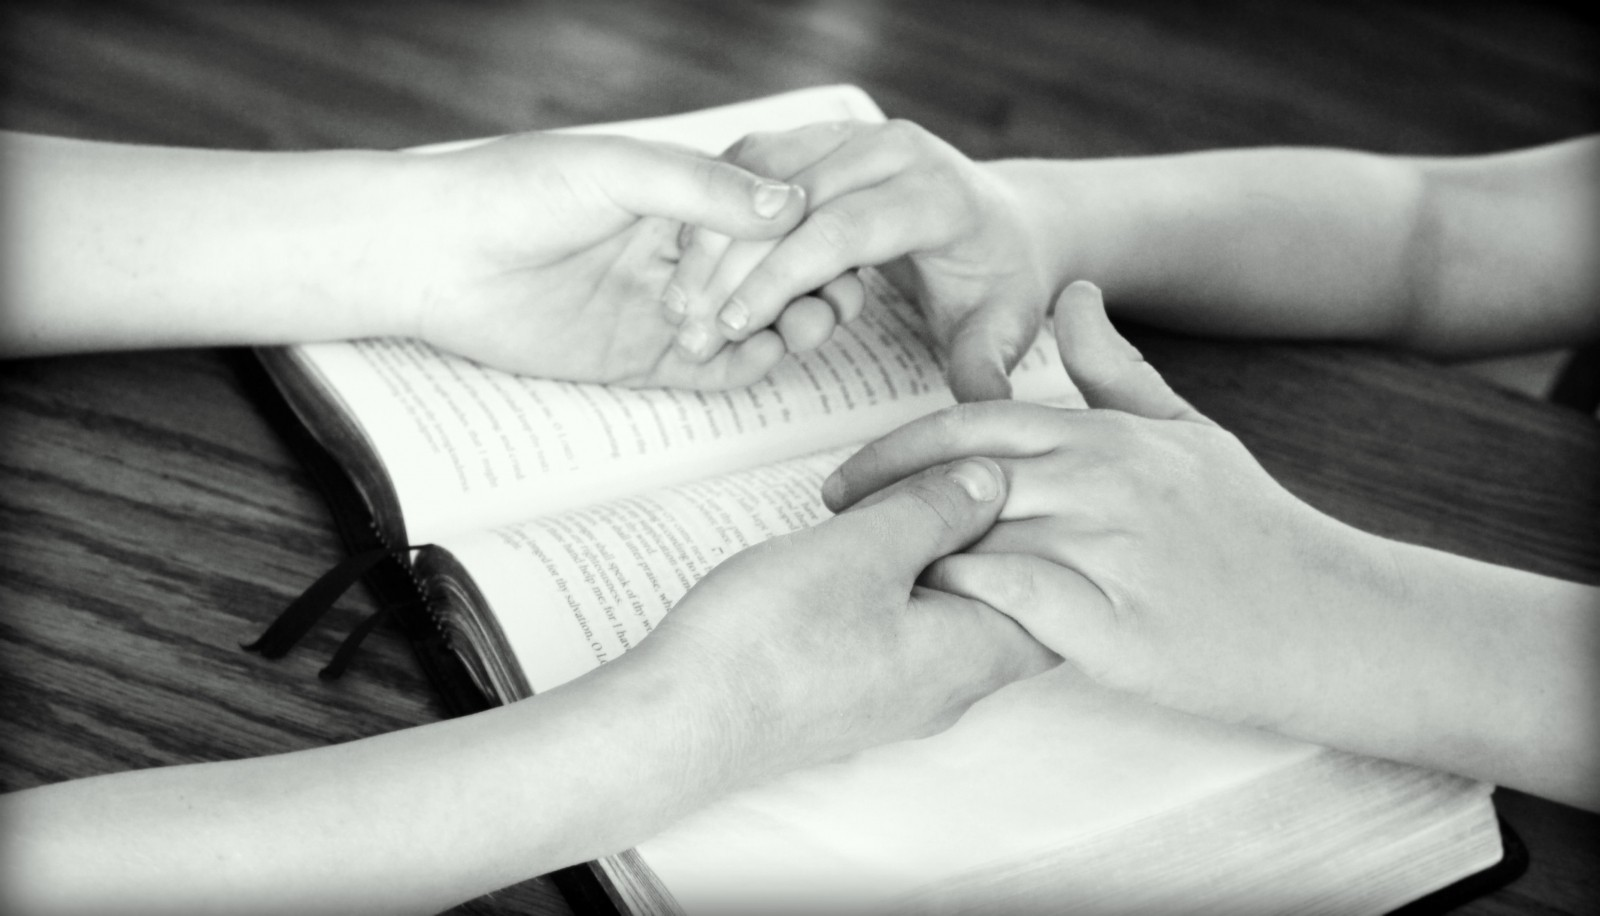 To The Parents of The Missing Two-Year-Old on Vacation in Florida: Our Prayers Are With You www.herviewfromhome.com